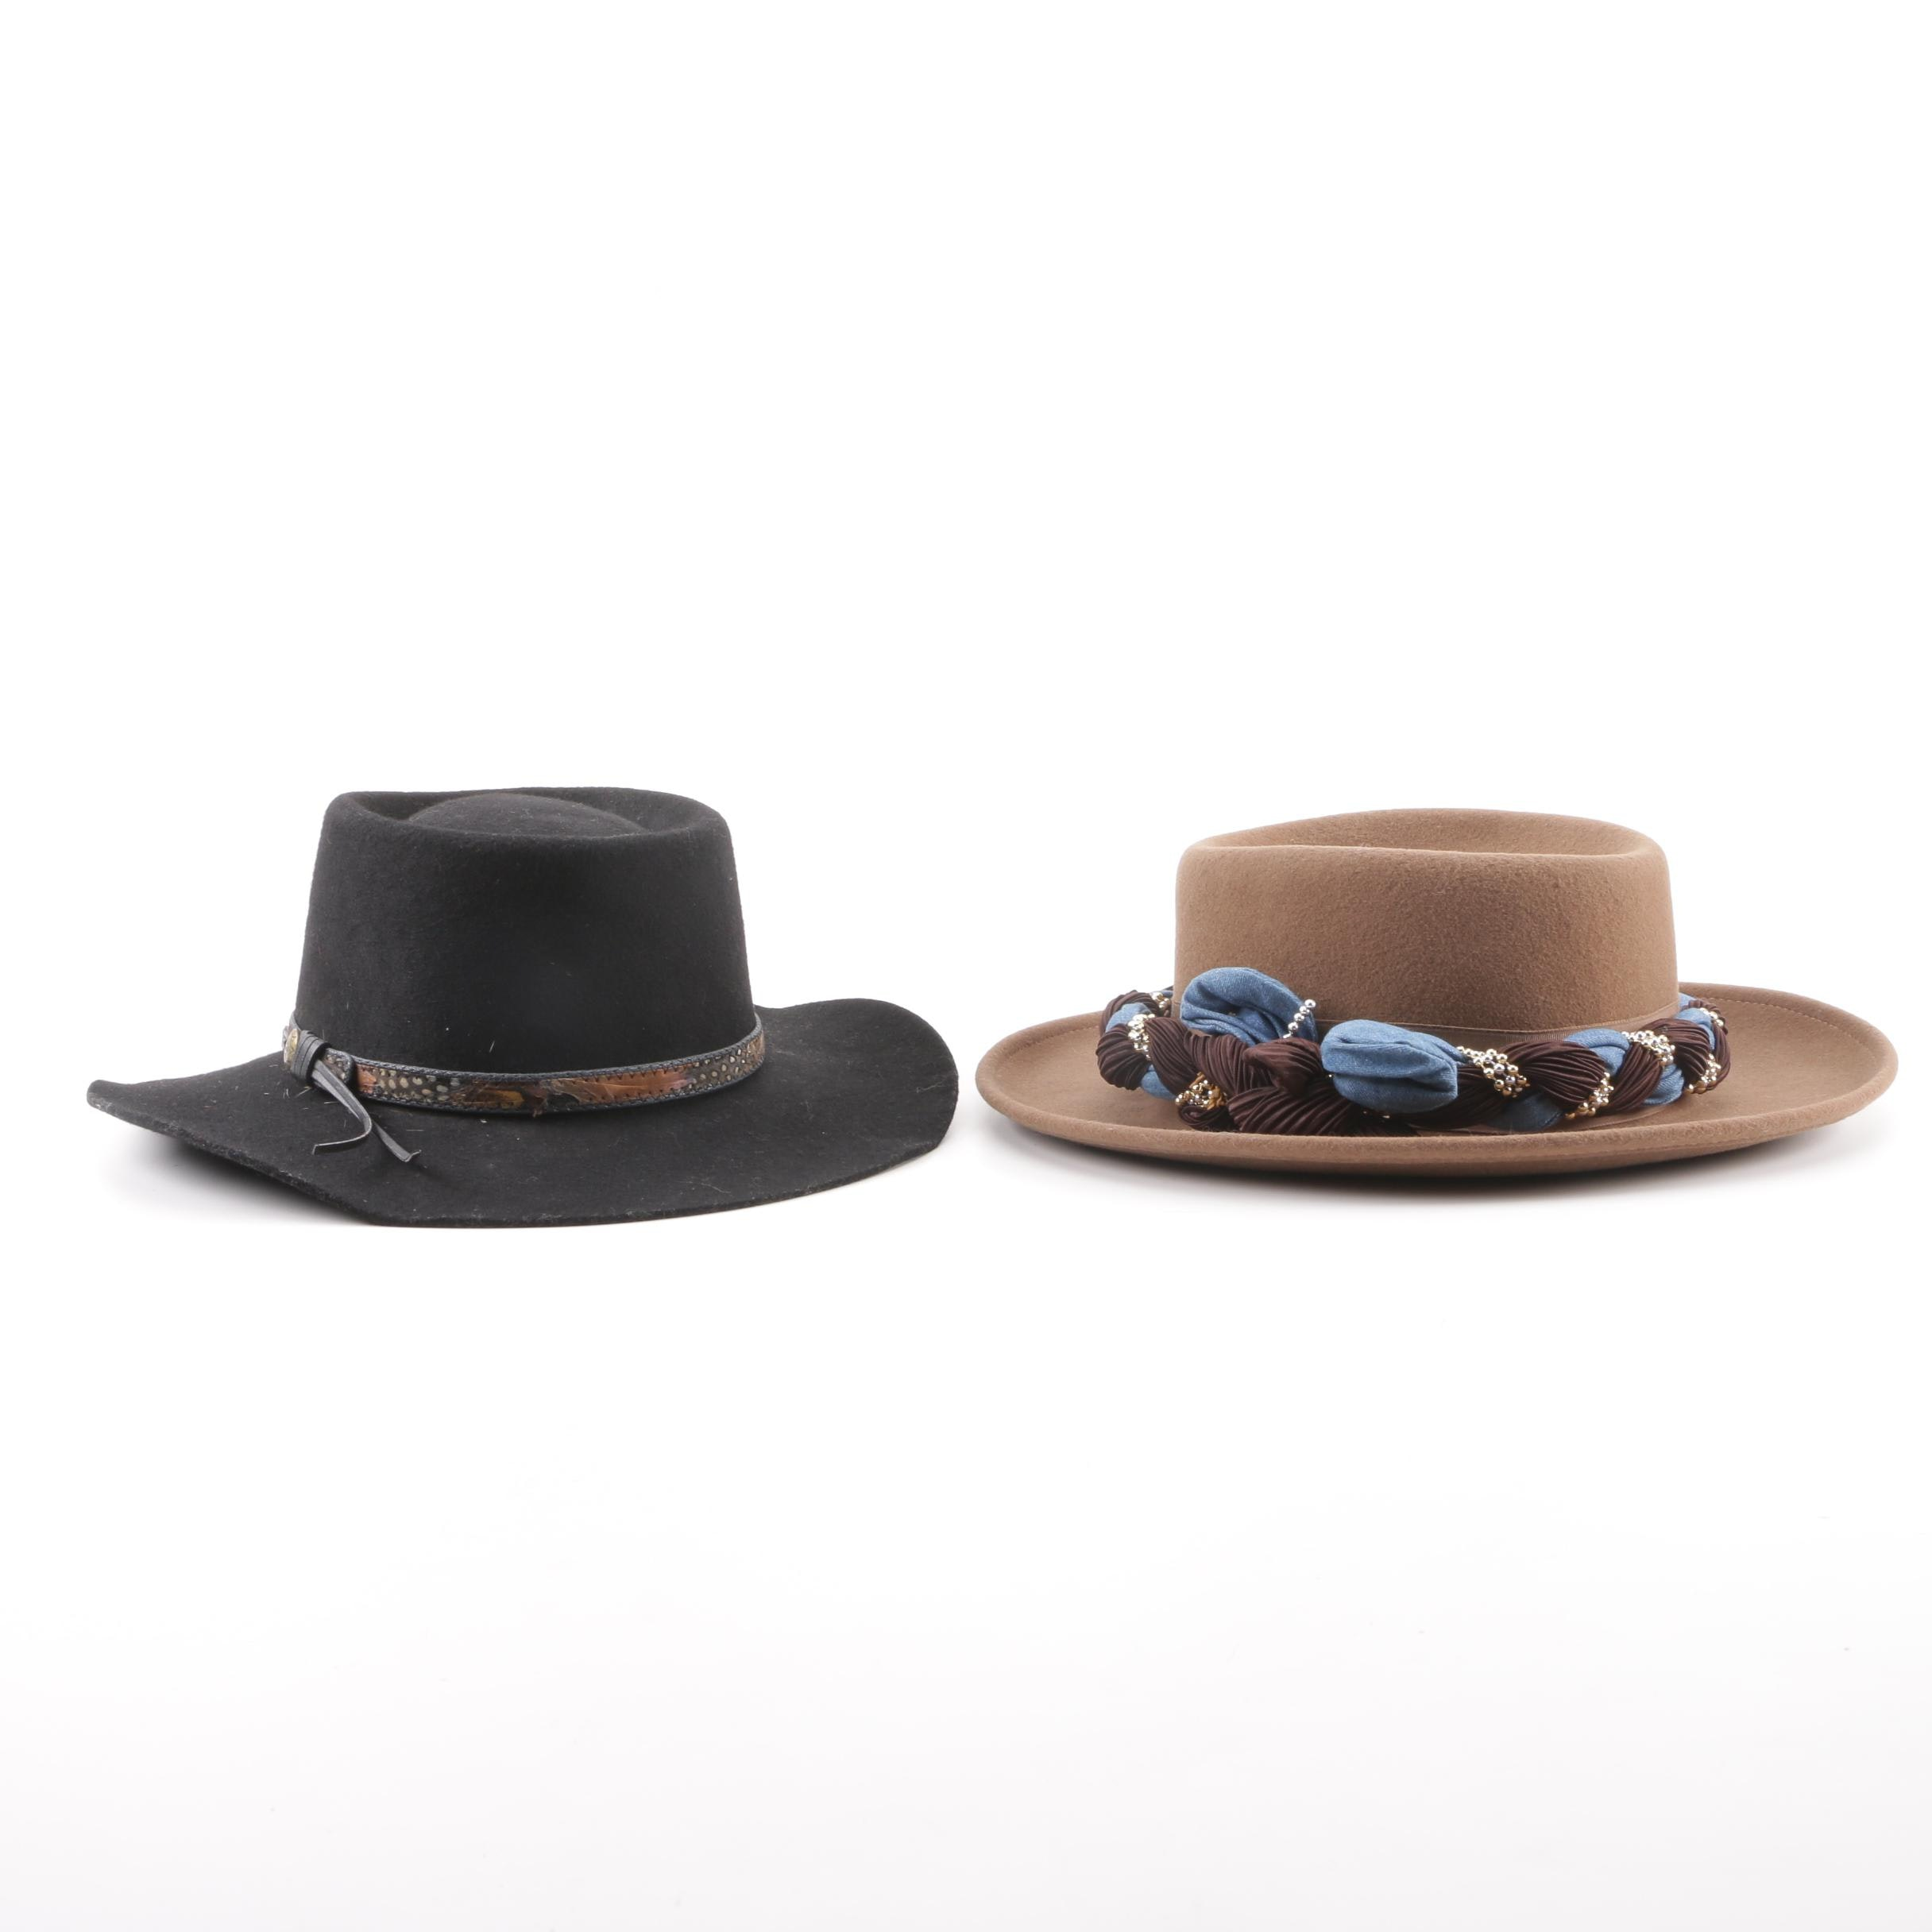 Outback Trading Company Fur Felt and Dorfman Pacific Wool Felt Hats